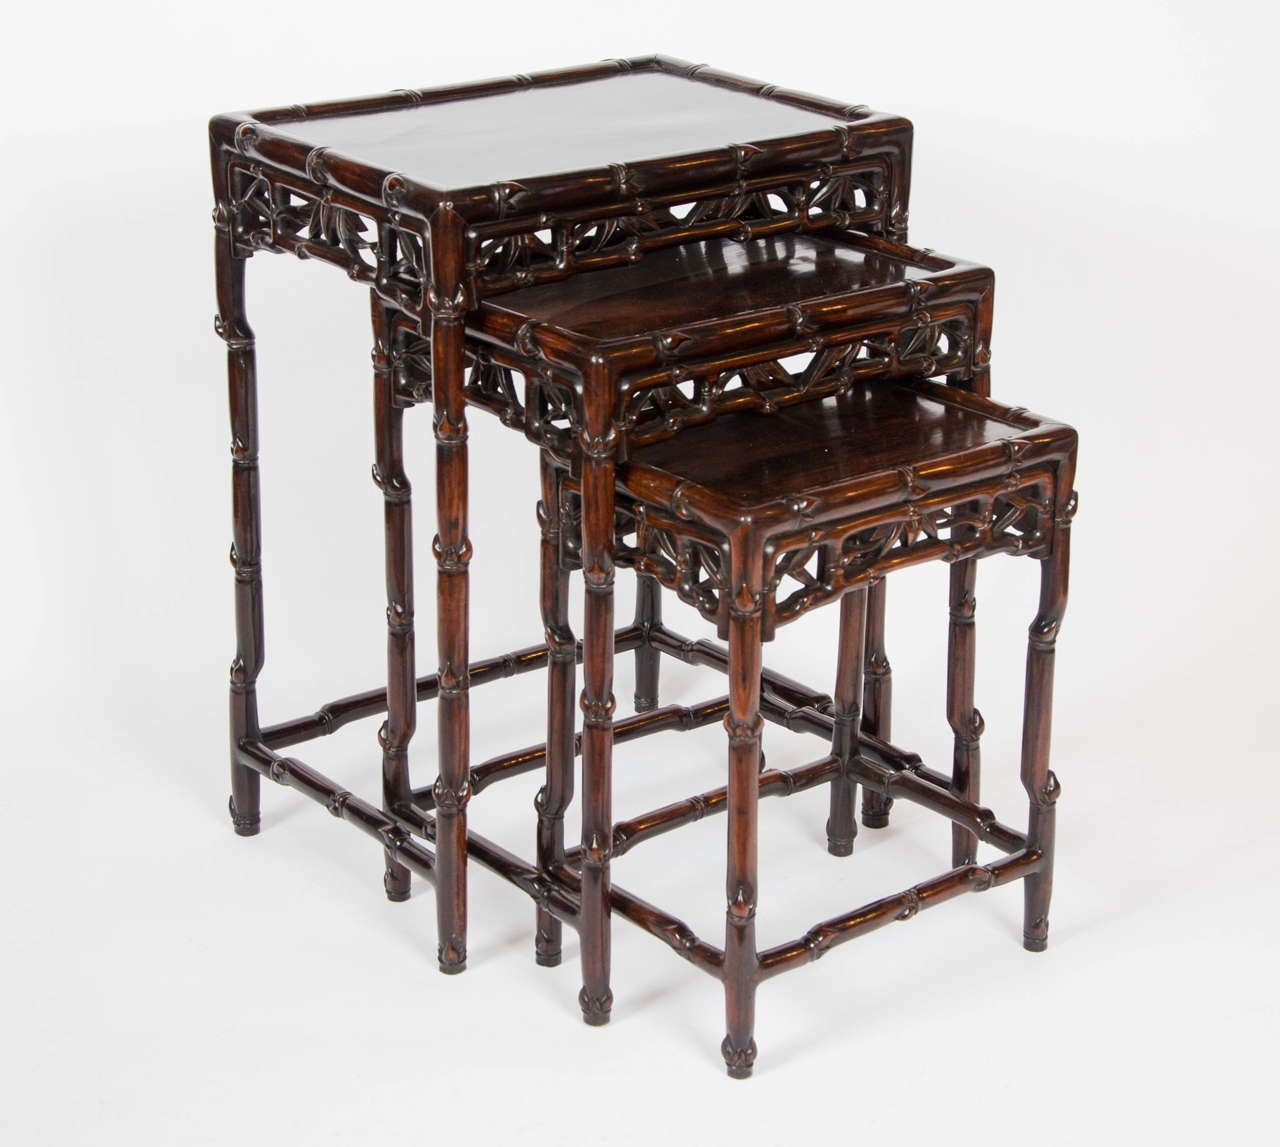 Explore Nesting Tables, Nests, And More!